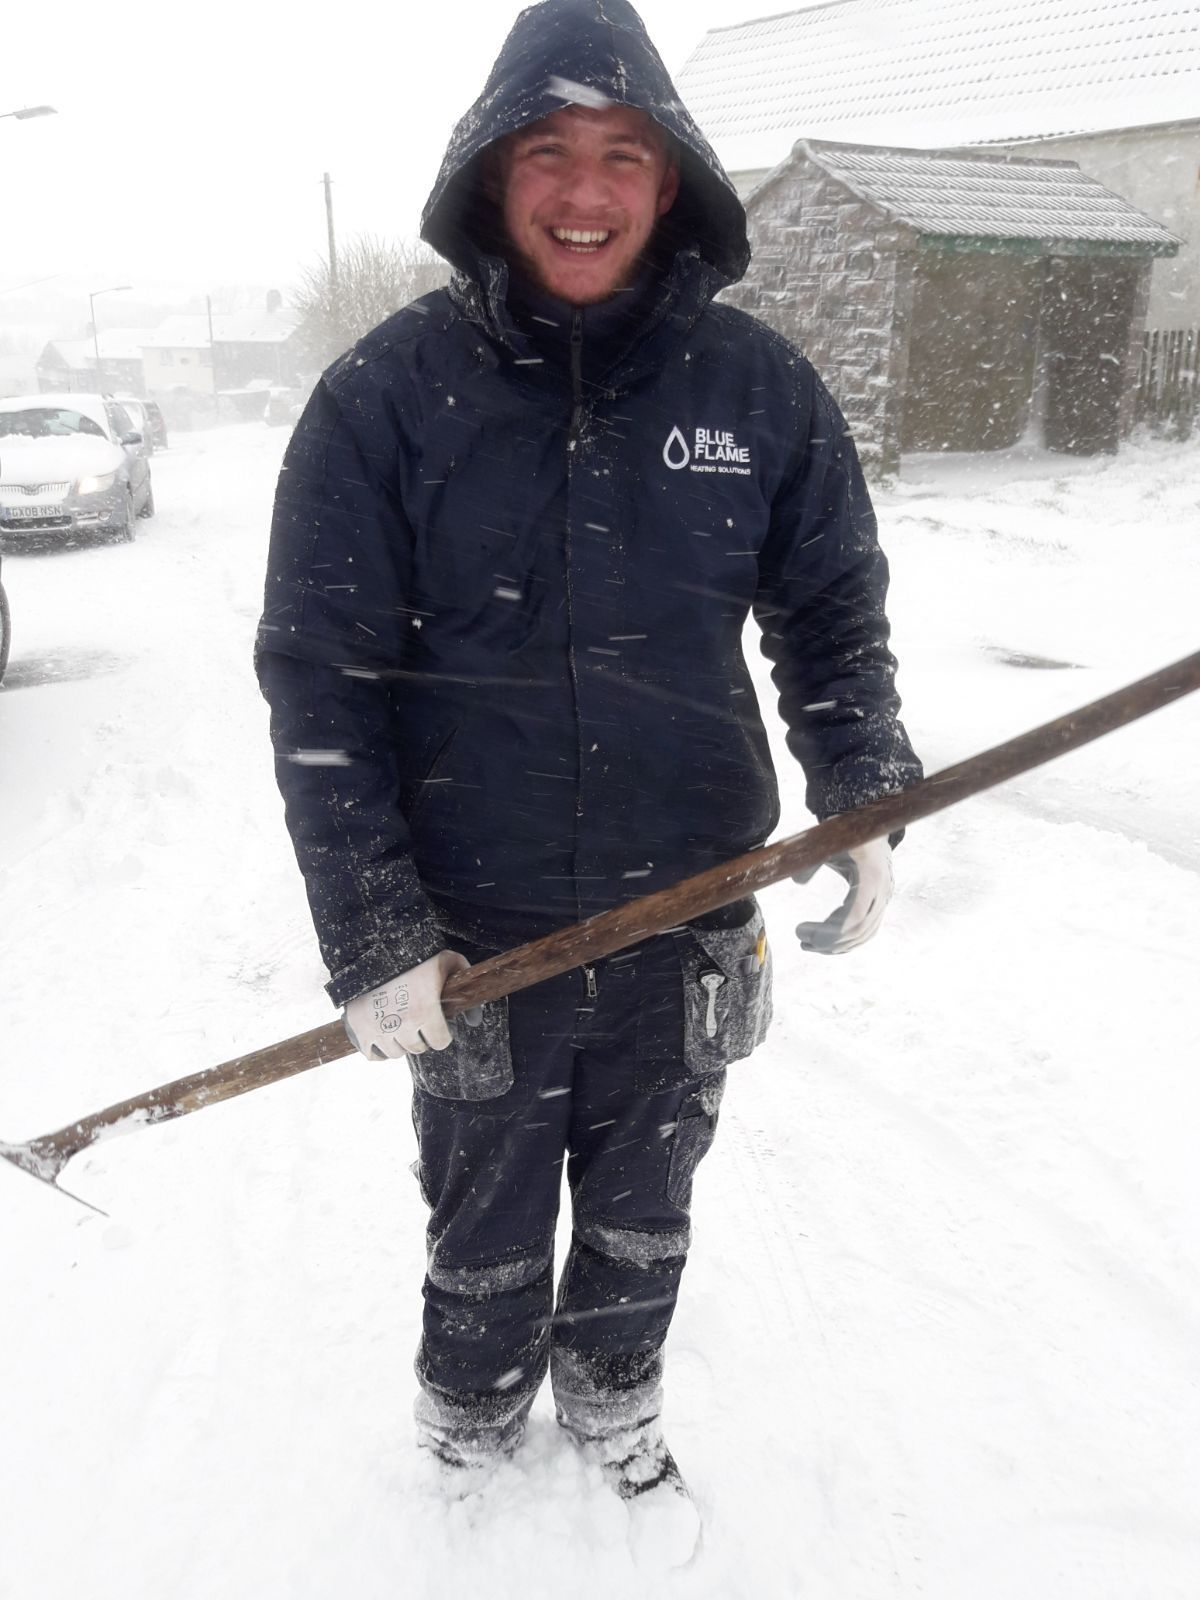 Blue Flame engineer, Eron Thornhill, battles the Beast from the East to support the heating company's client.